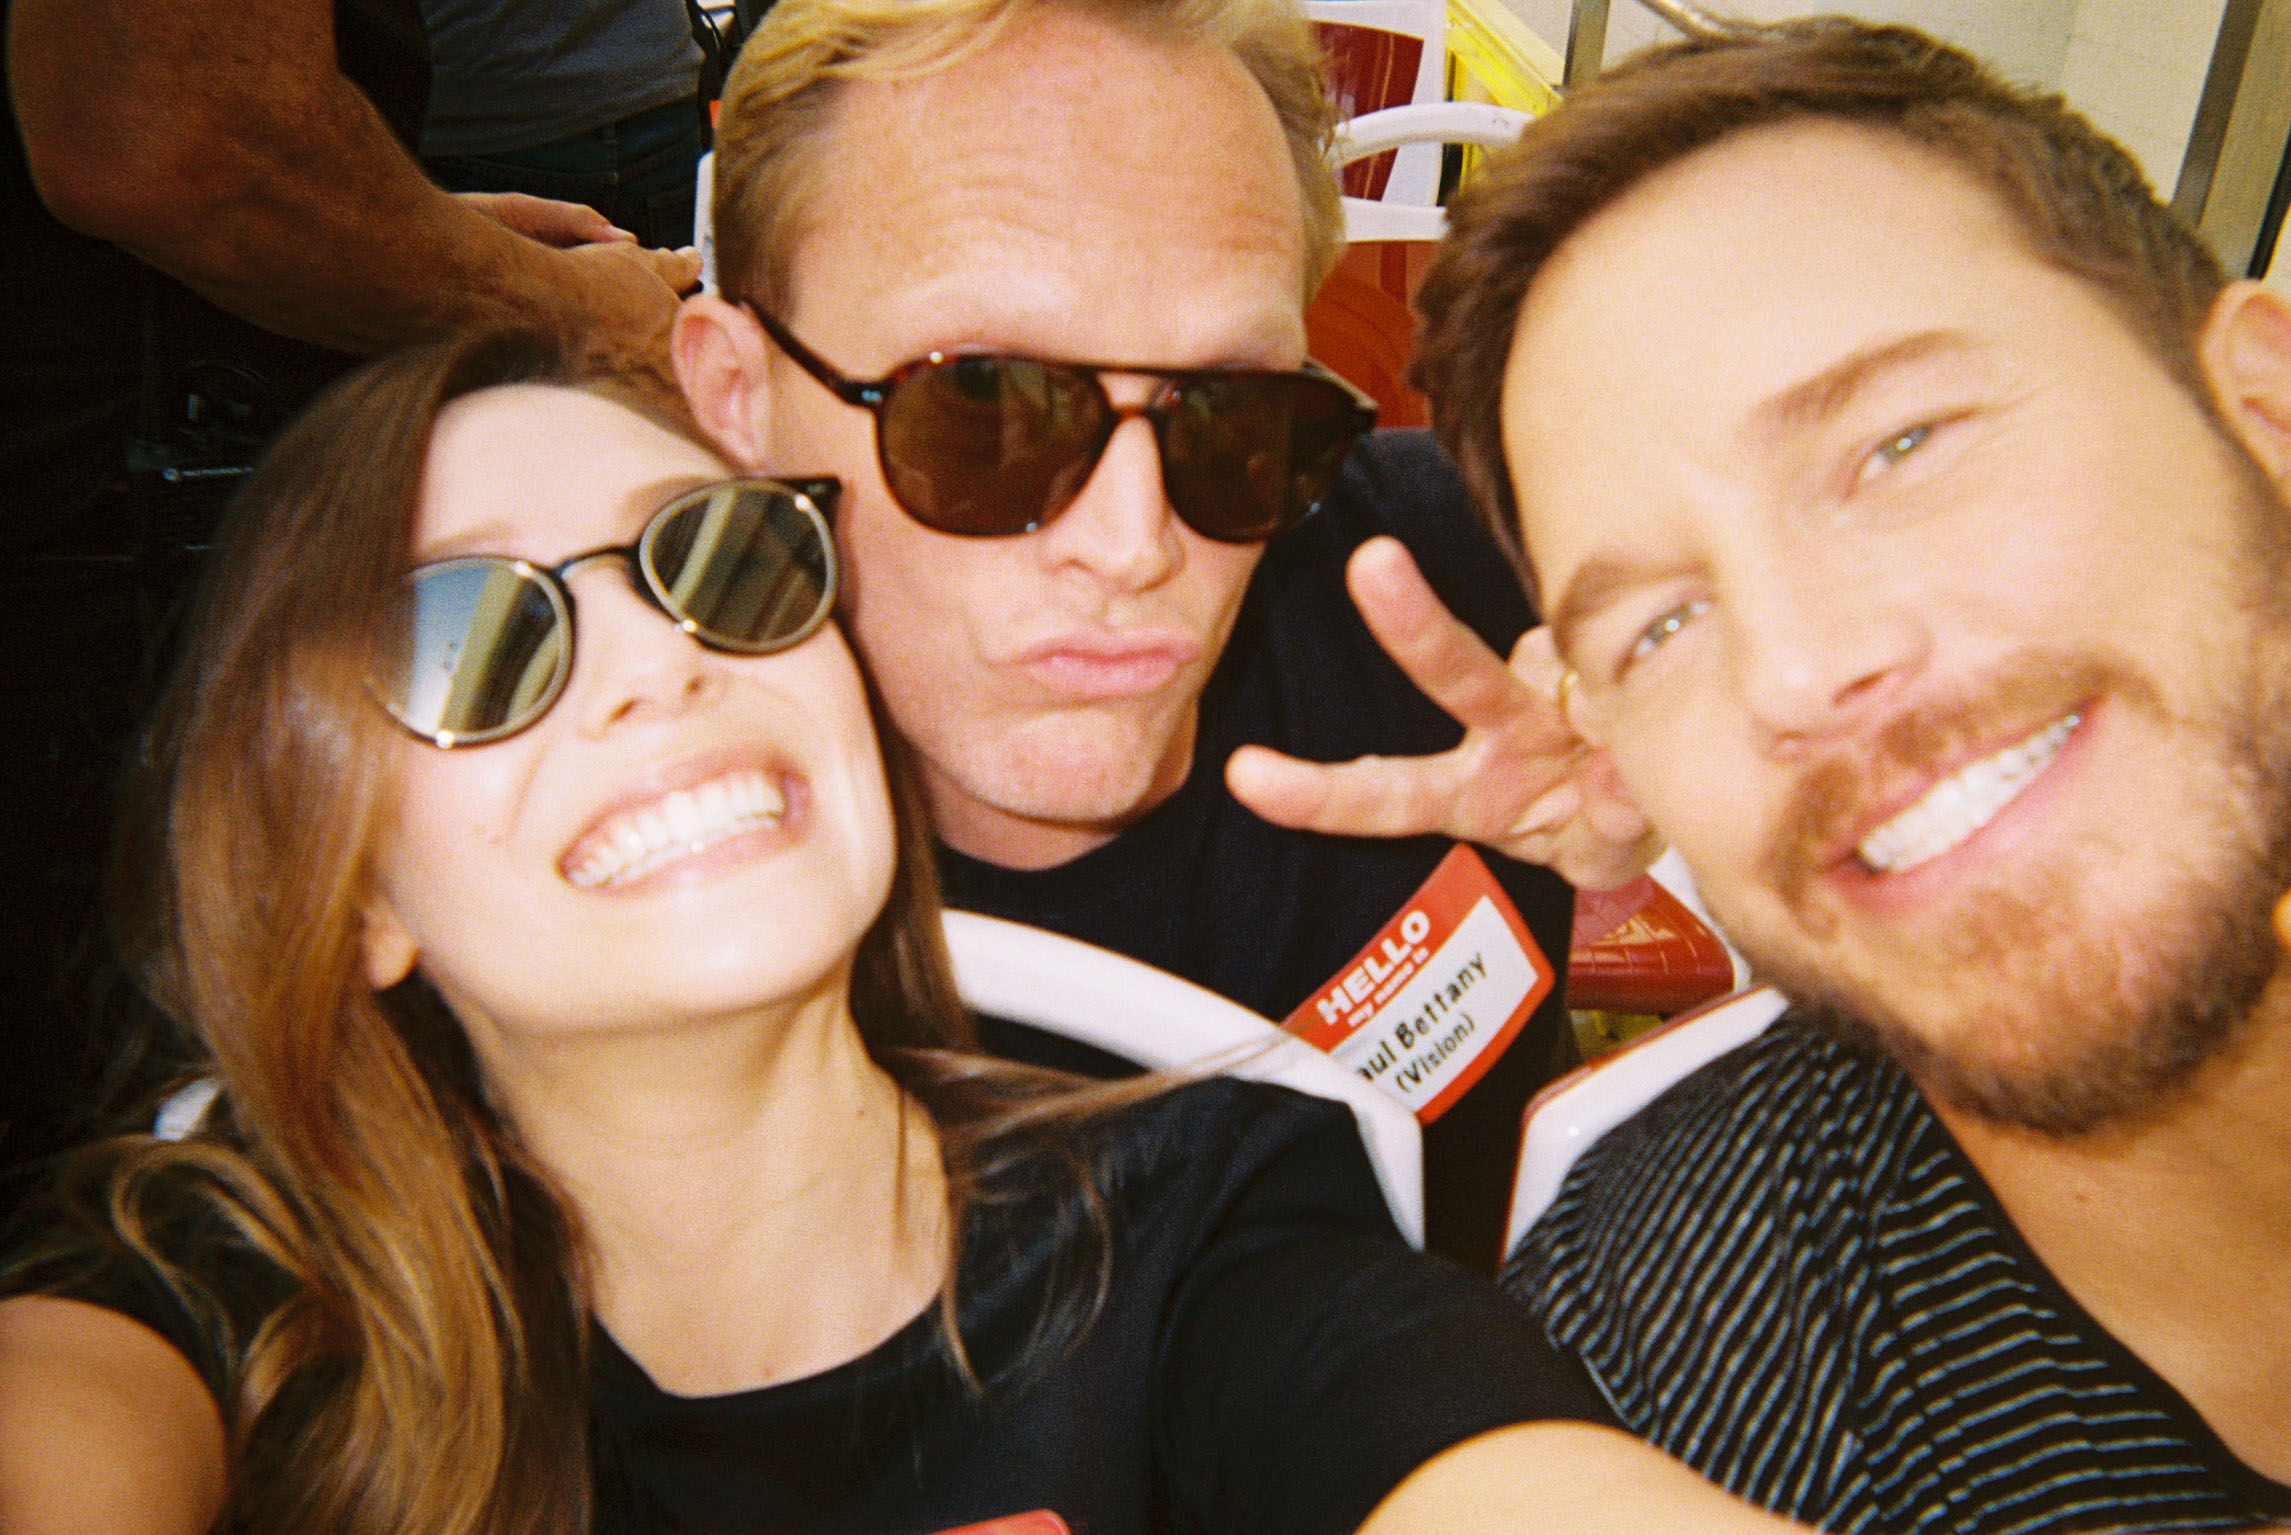 Elizabeth Olsen, Paul Bettany and Chris Pratt